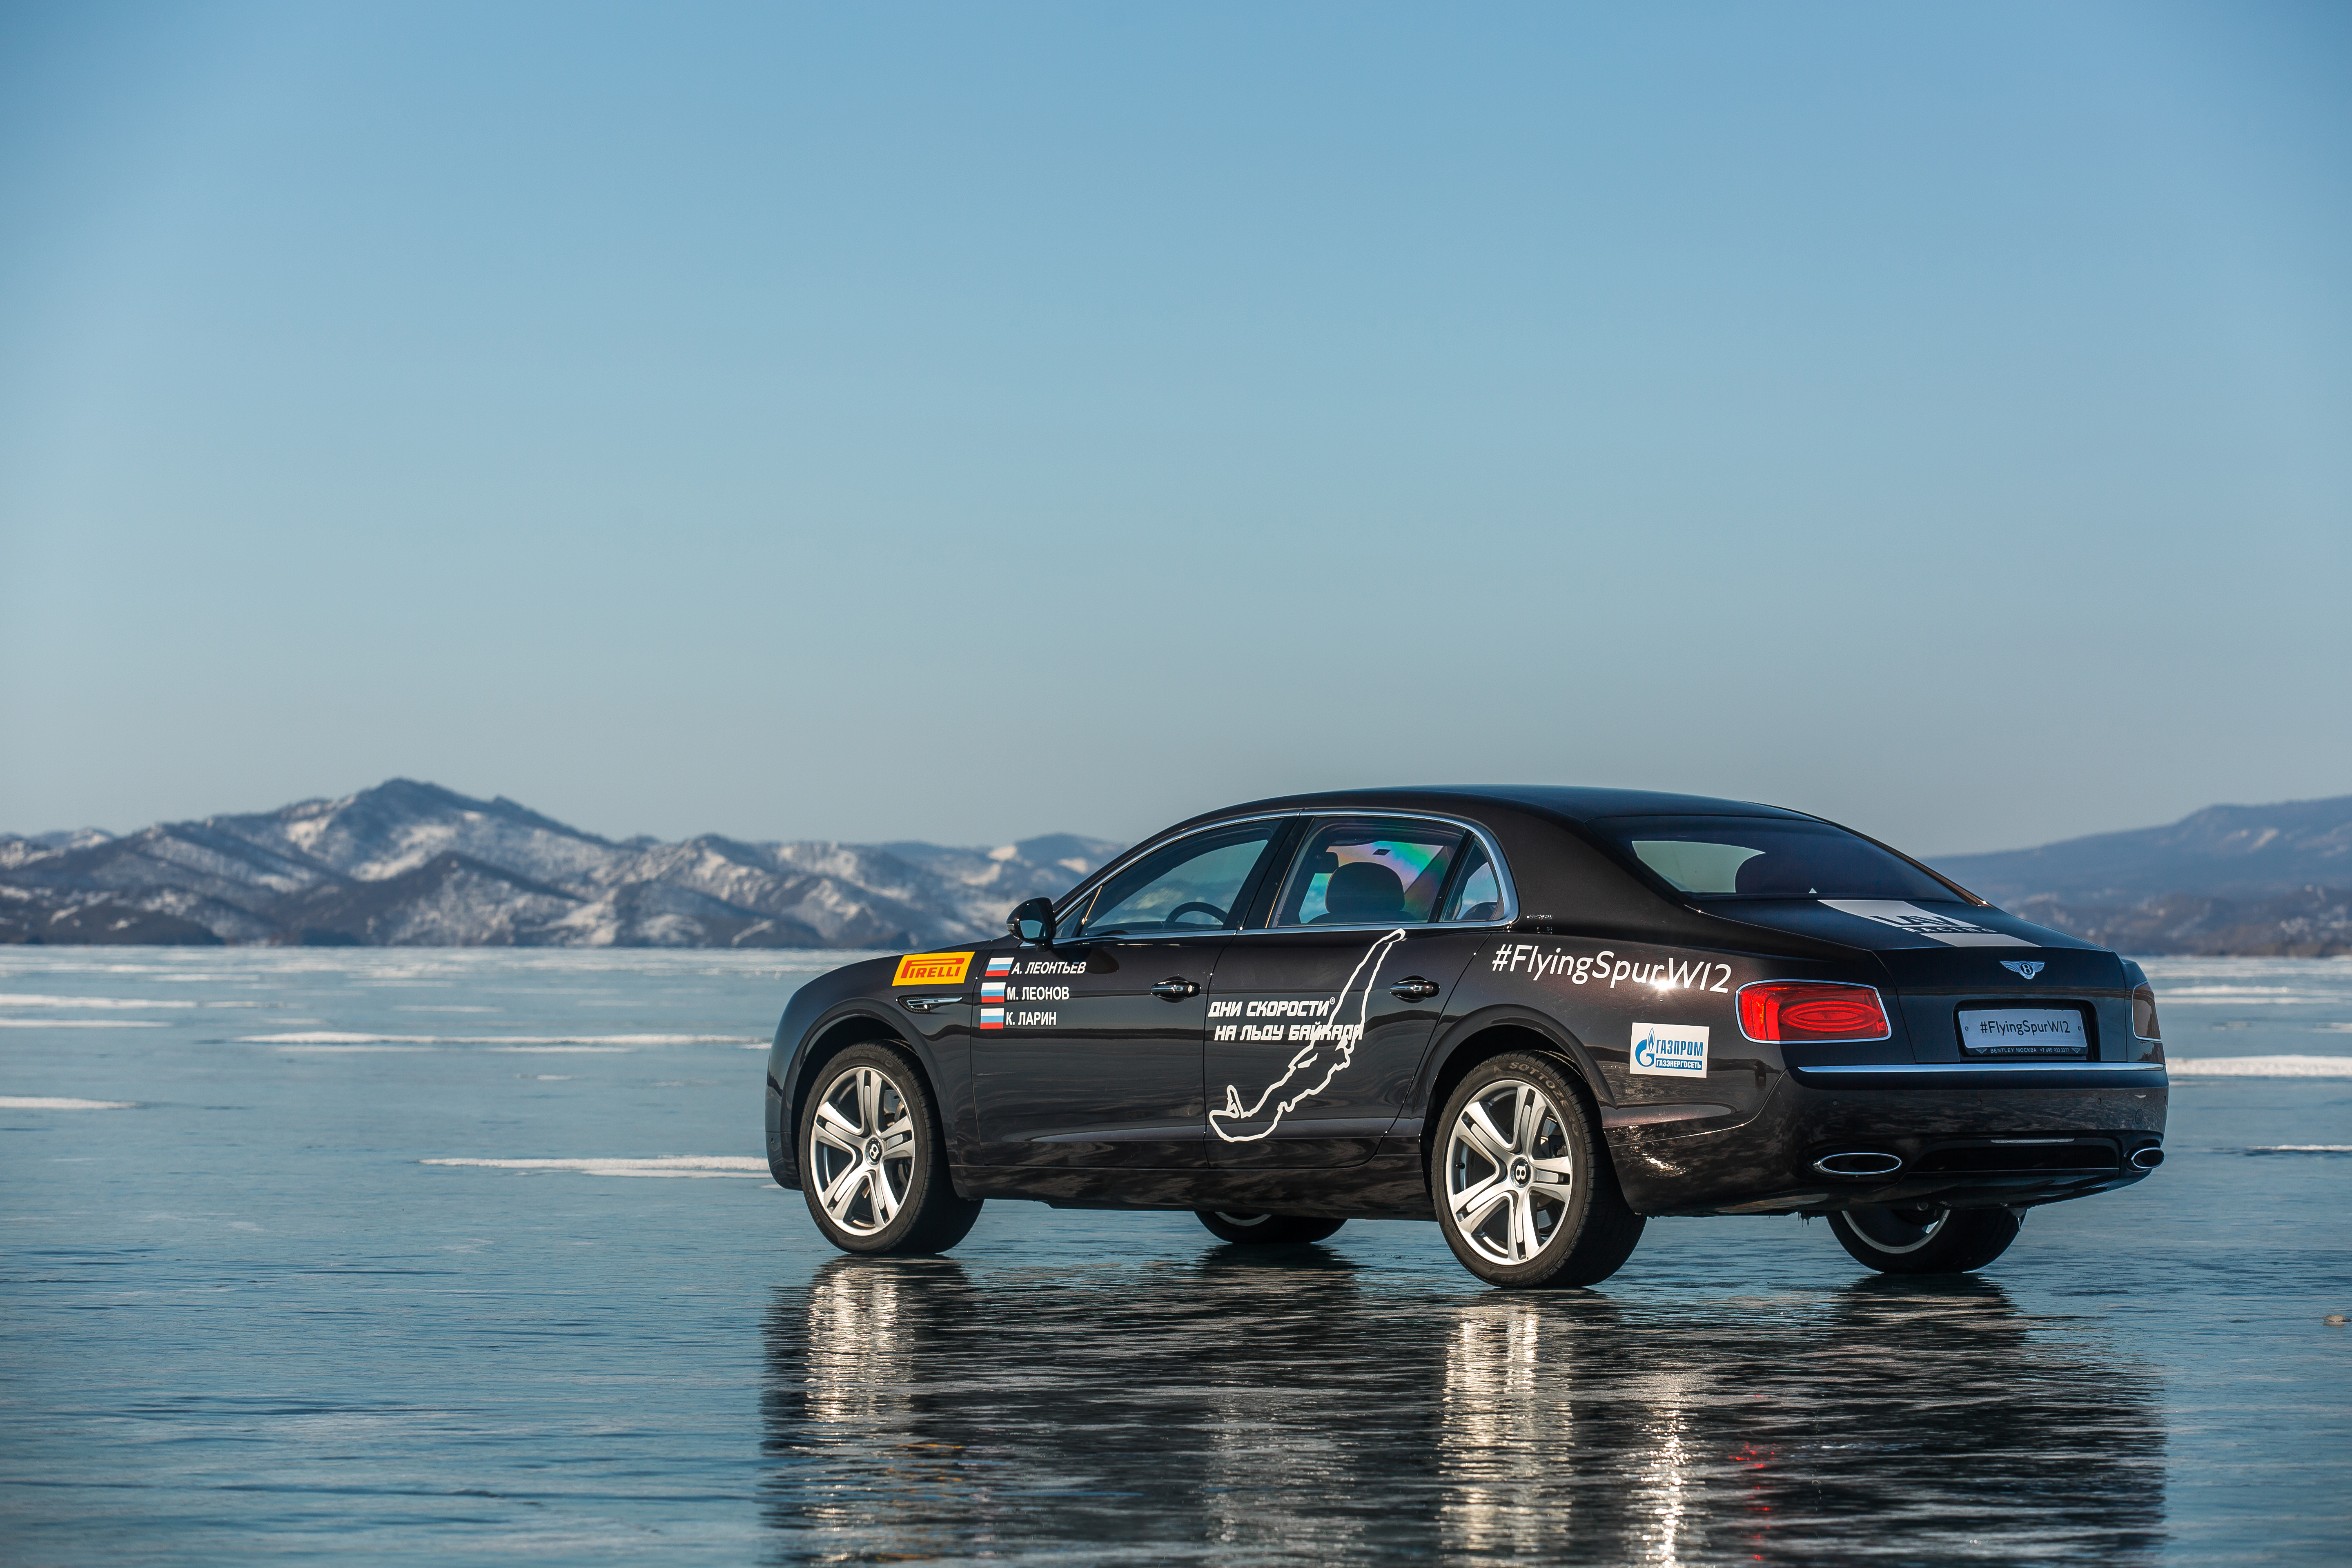 Record car FS W 12_Static on Baikal Ice